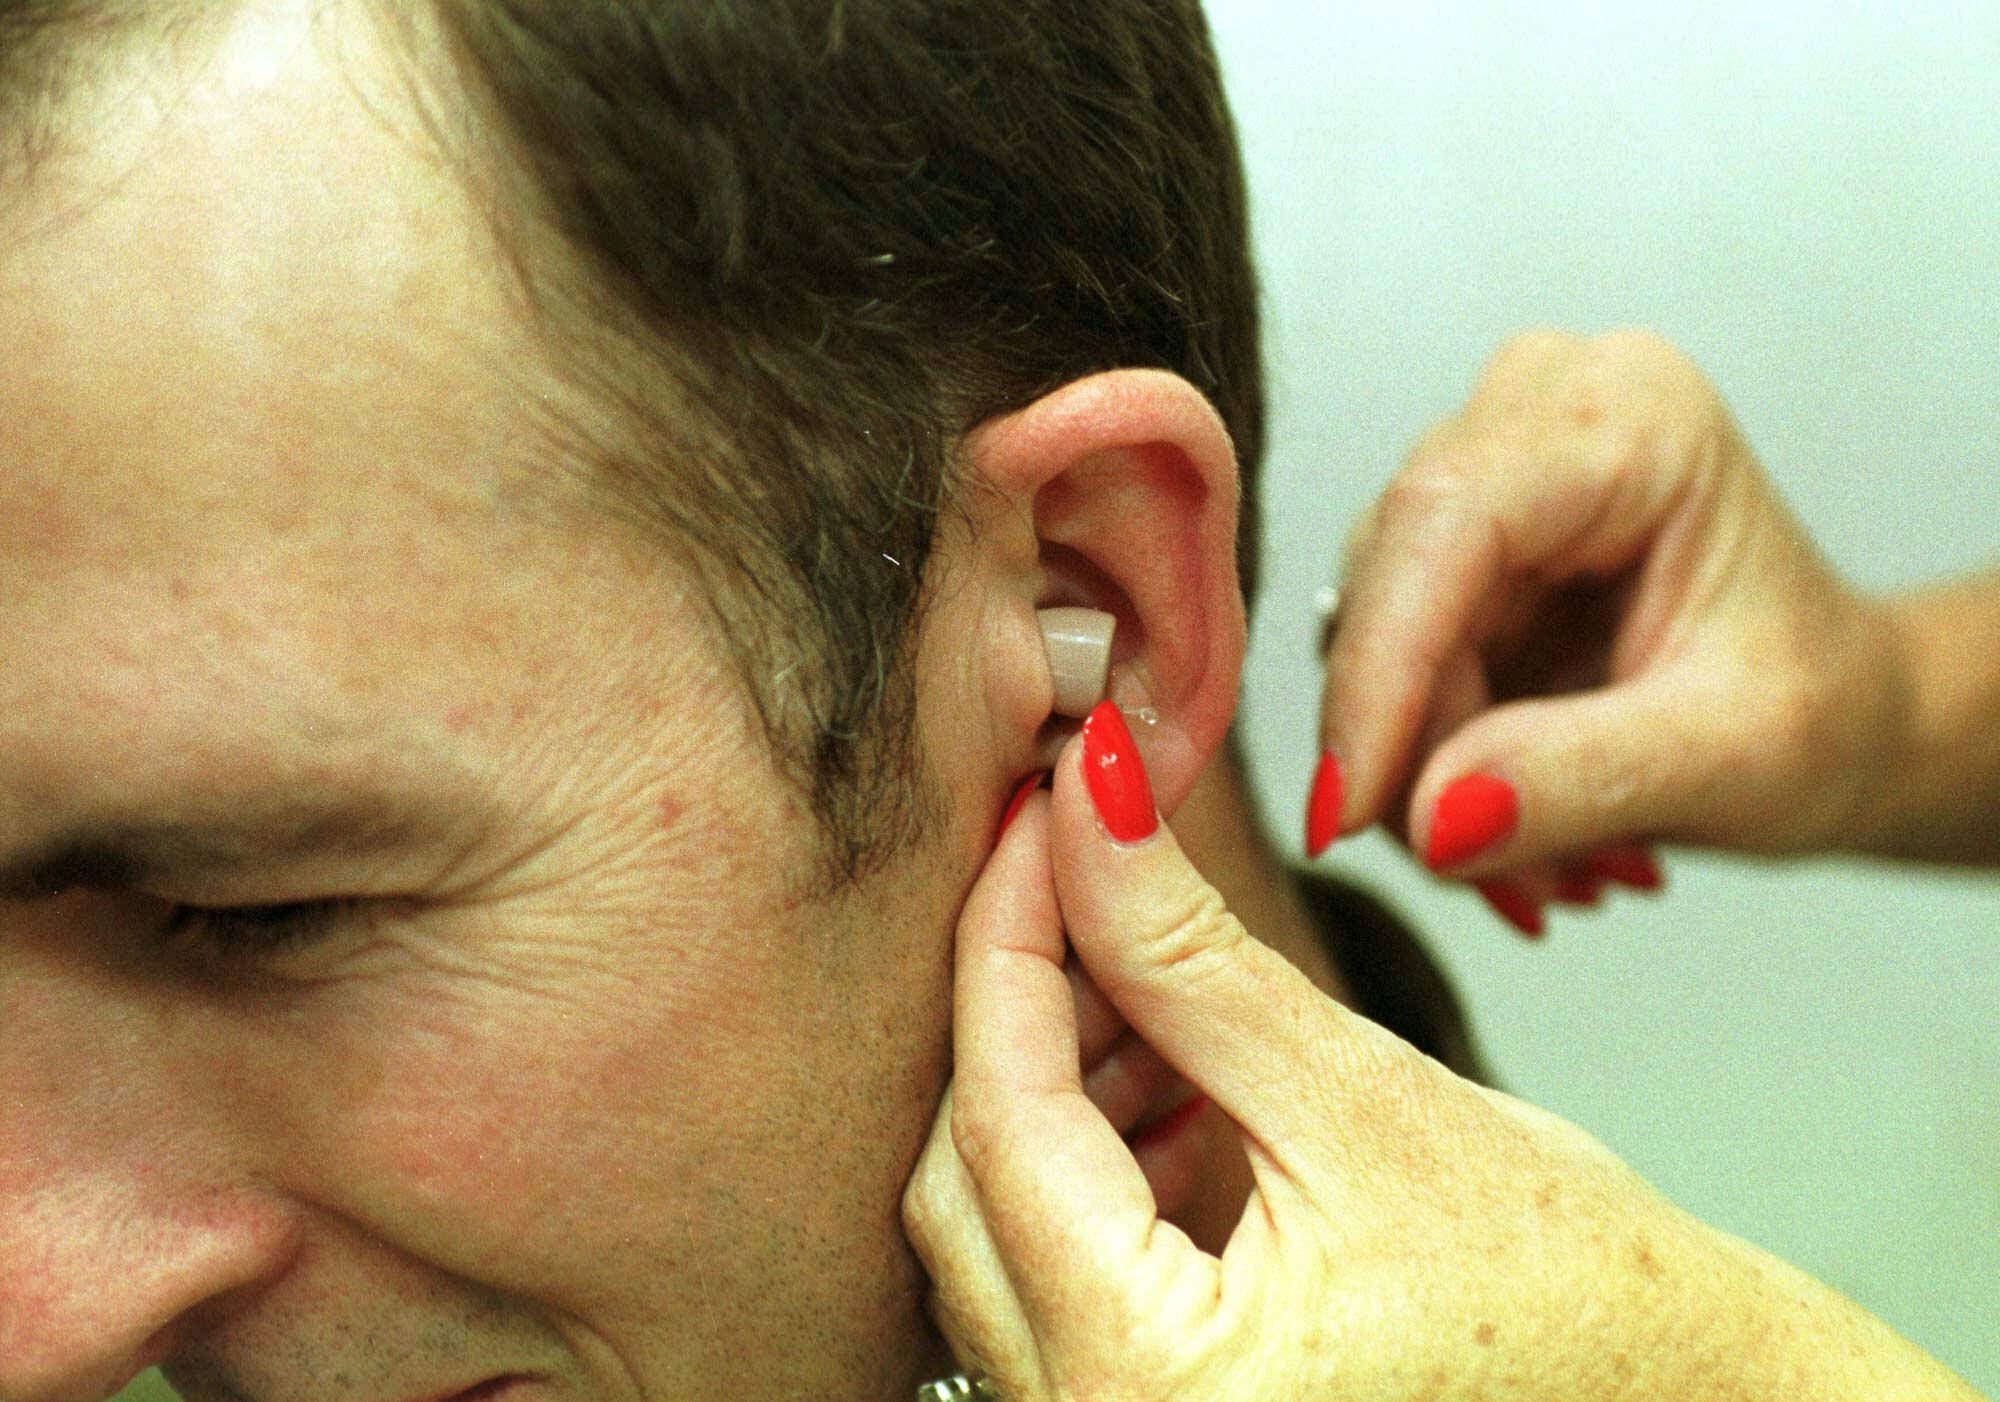 Adults with untreated hearing loss suffer more health problems, increased costs: Study